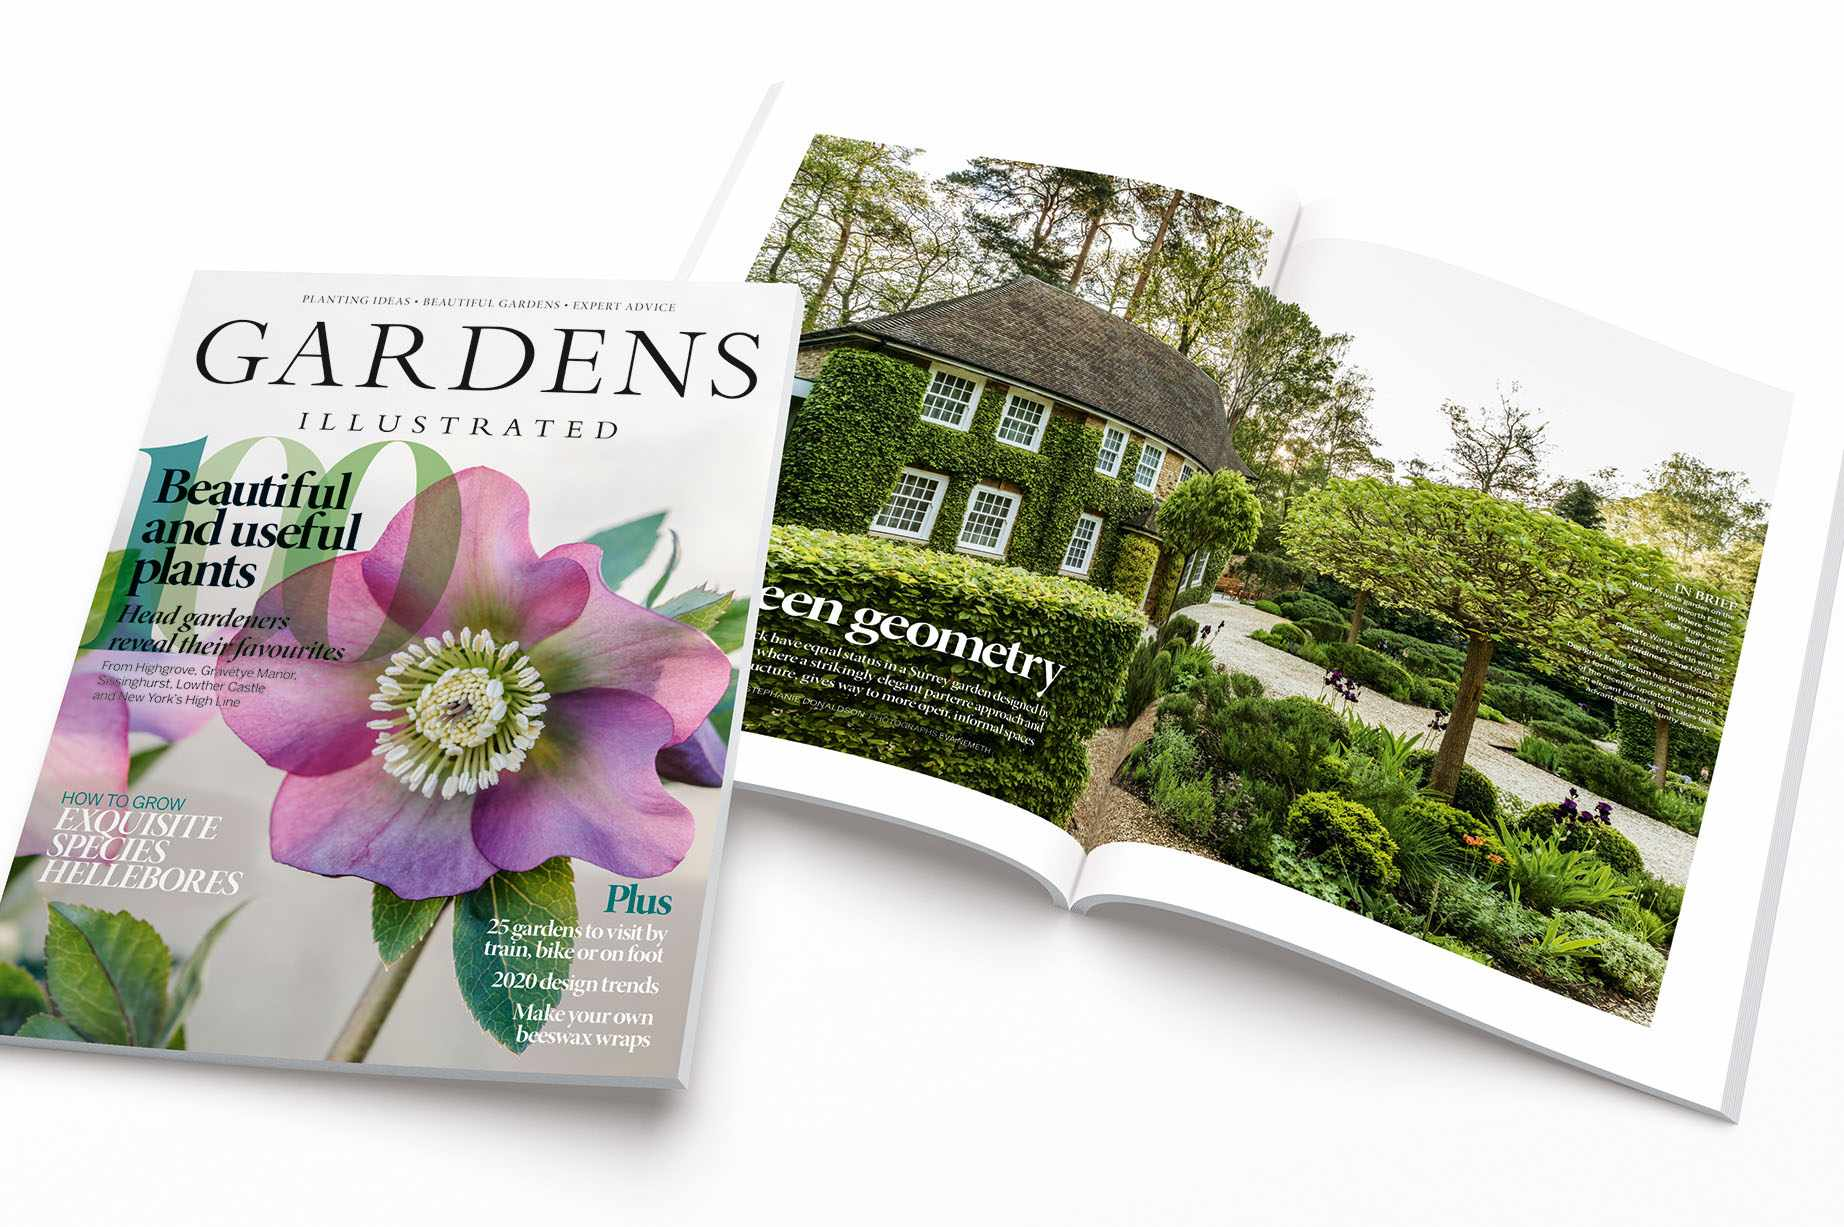 Gardens Illustrated January 2020 edition